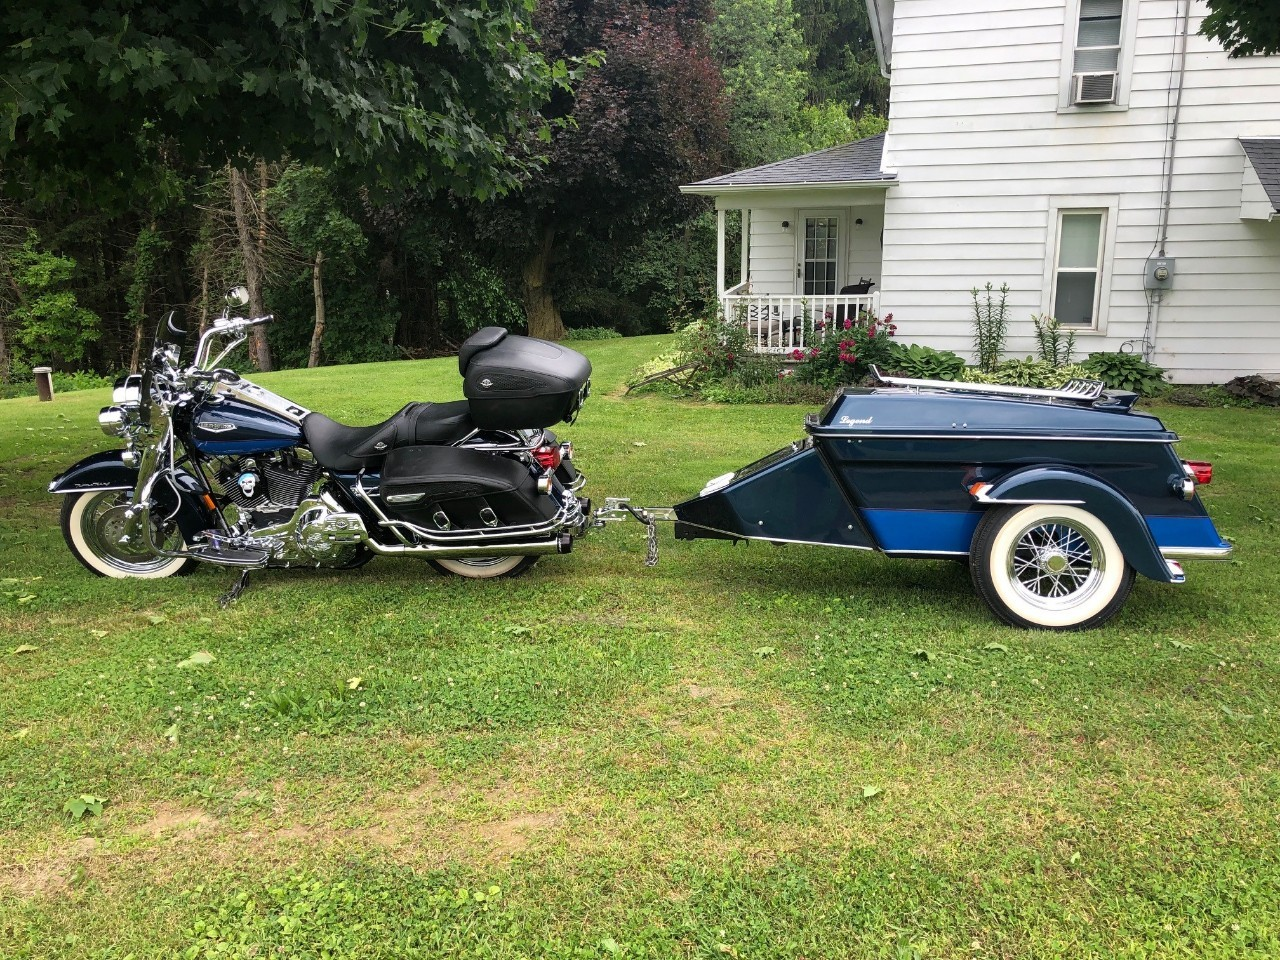 ohio - Road King For Sale - Harley-Davidson Motorcycles